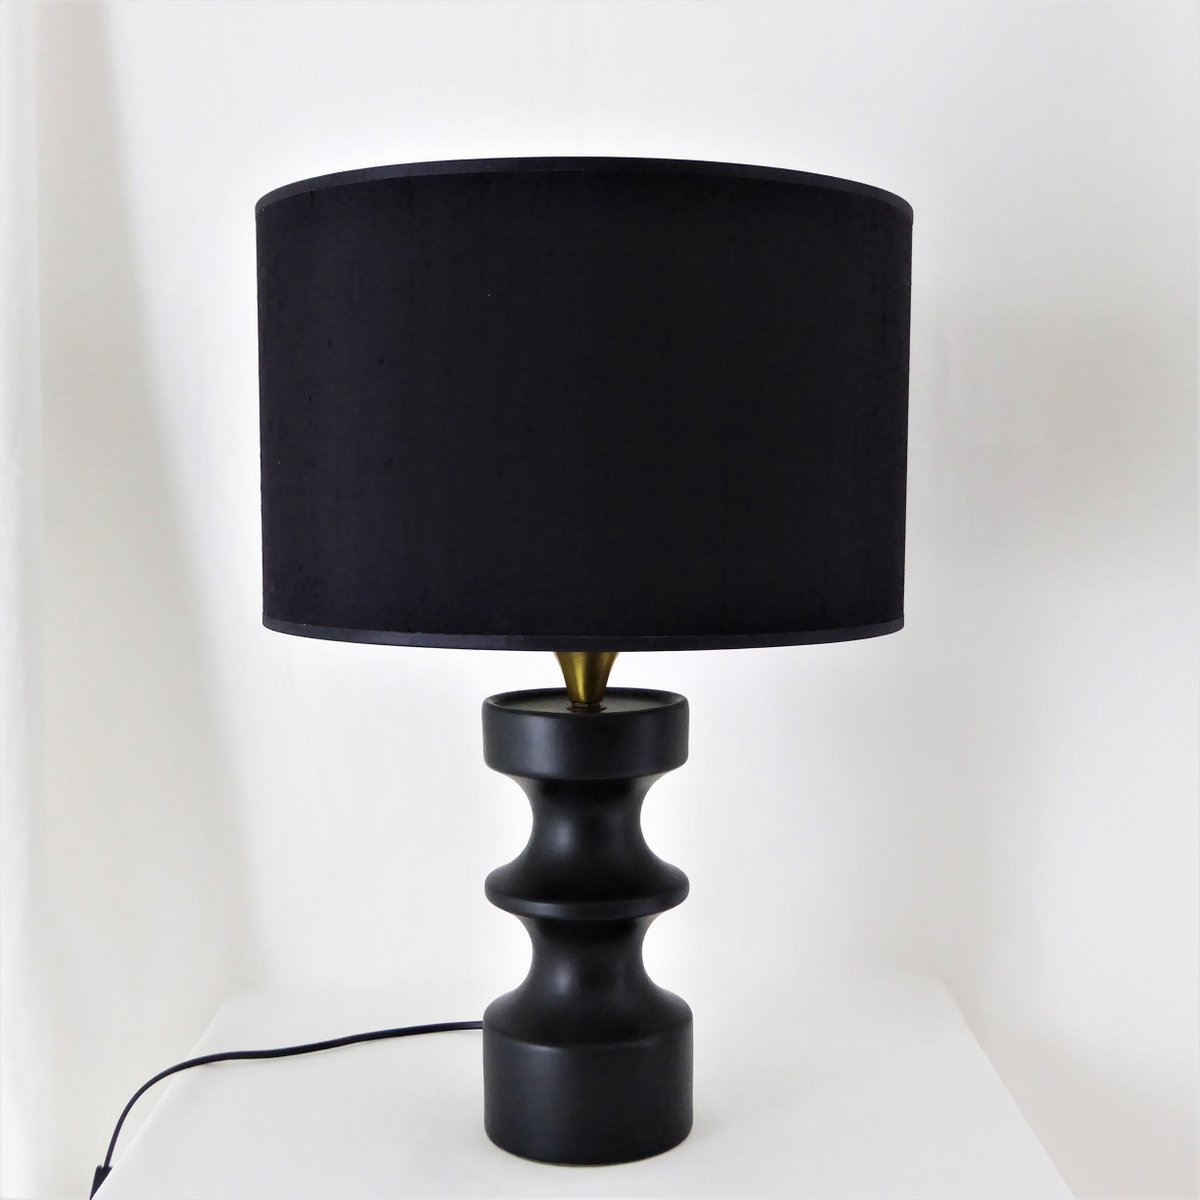 schwarze keramik schachspielfigur lampe 1950er bei pamono kaufen. Black Bedroom Furniture Sets. Home Design Ideas